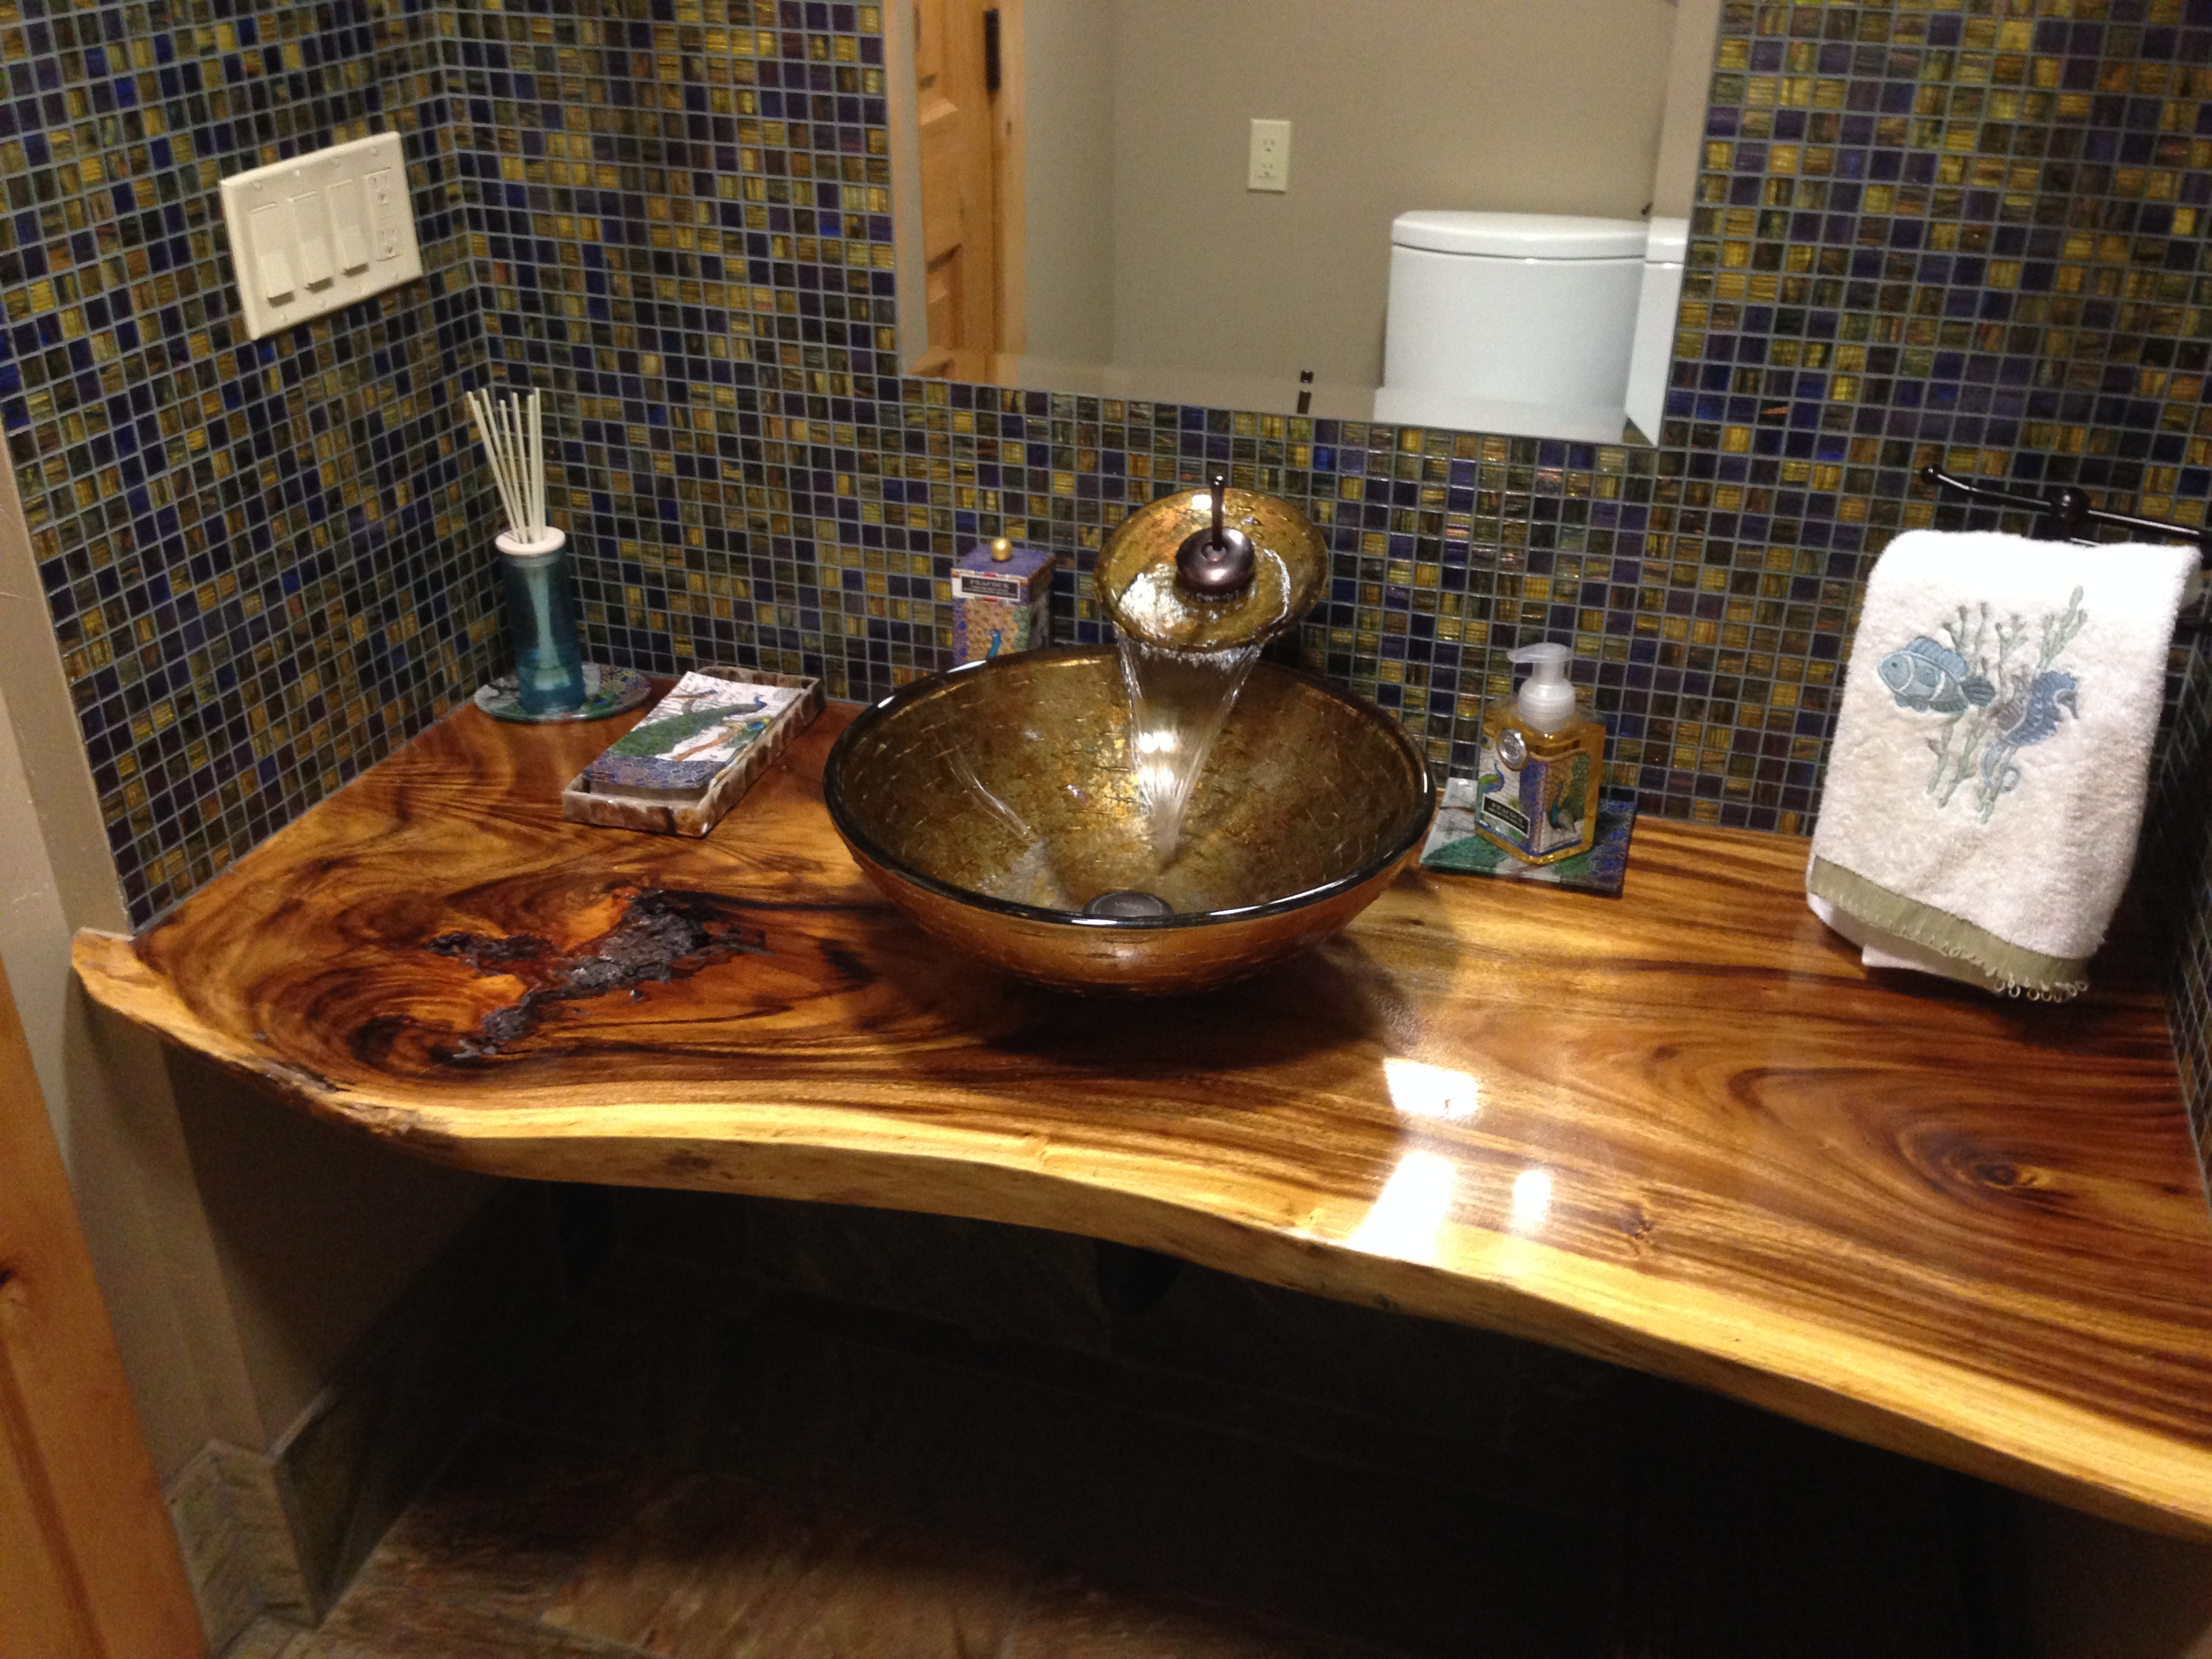 Bath Sink and Countertop